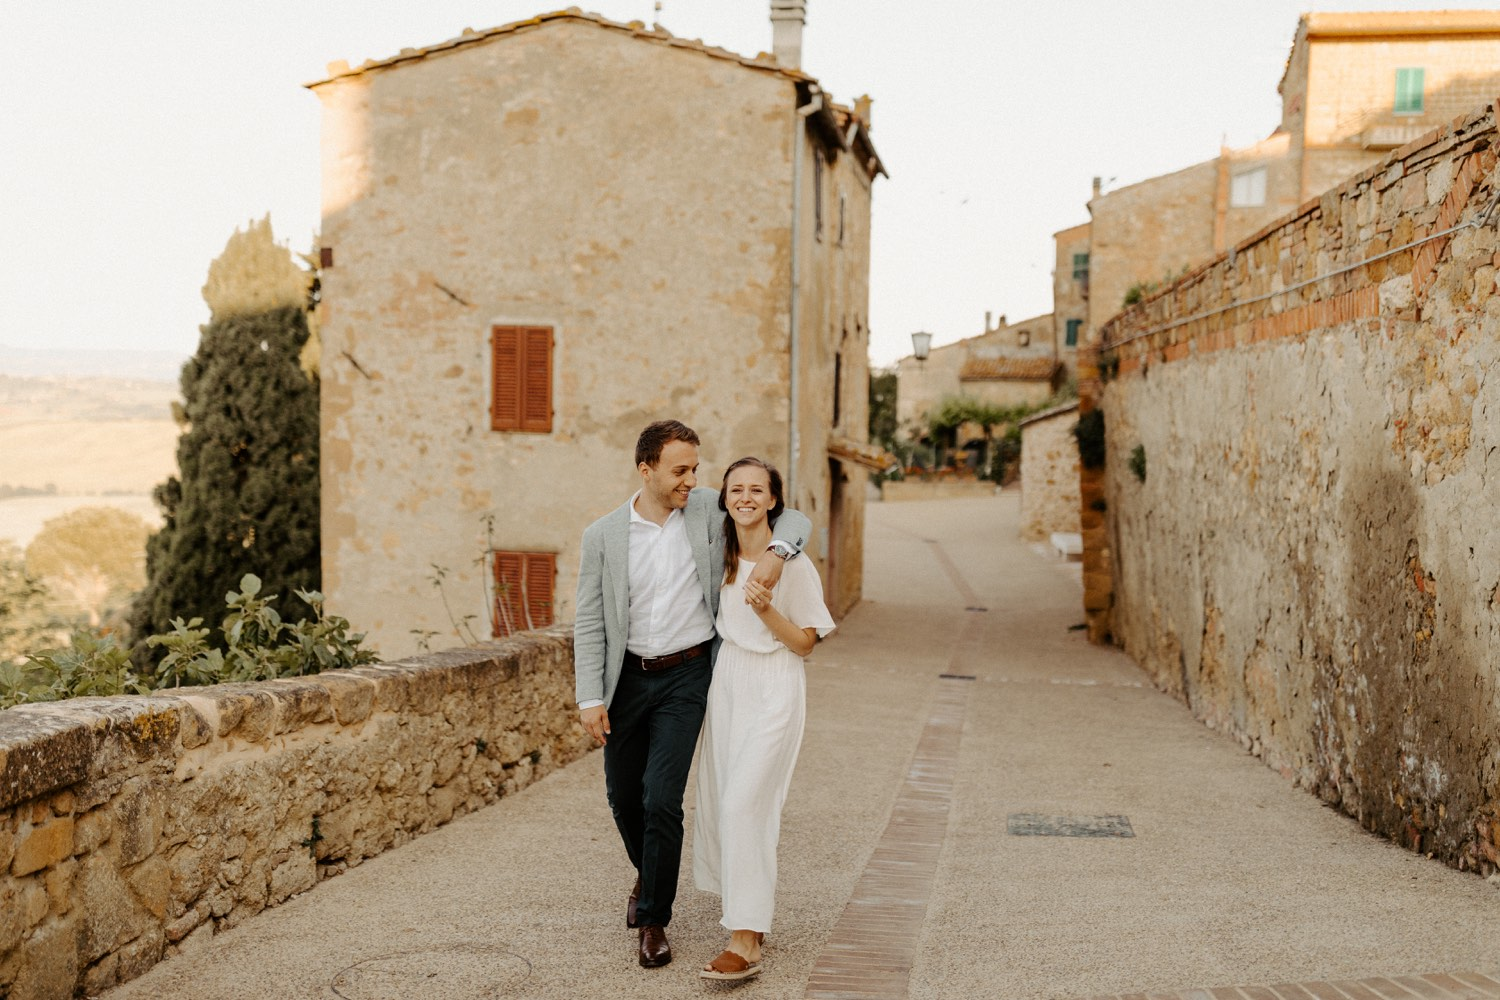 30_ali-dirk-pre-wedding-095_tuscany_siena_province_wedding_italy_photography.jpg